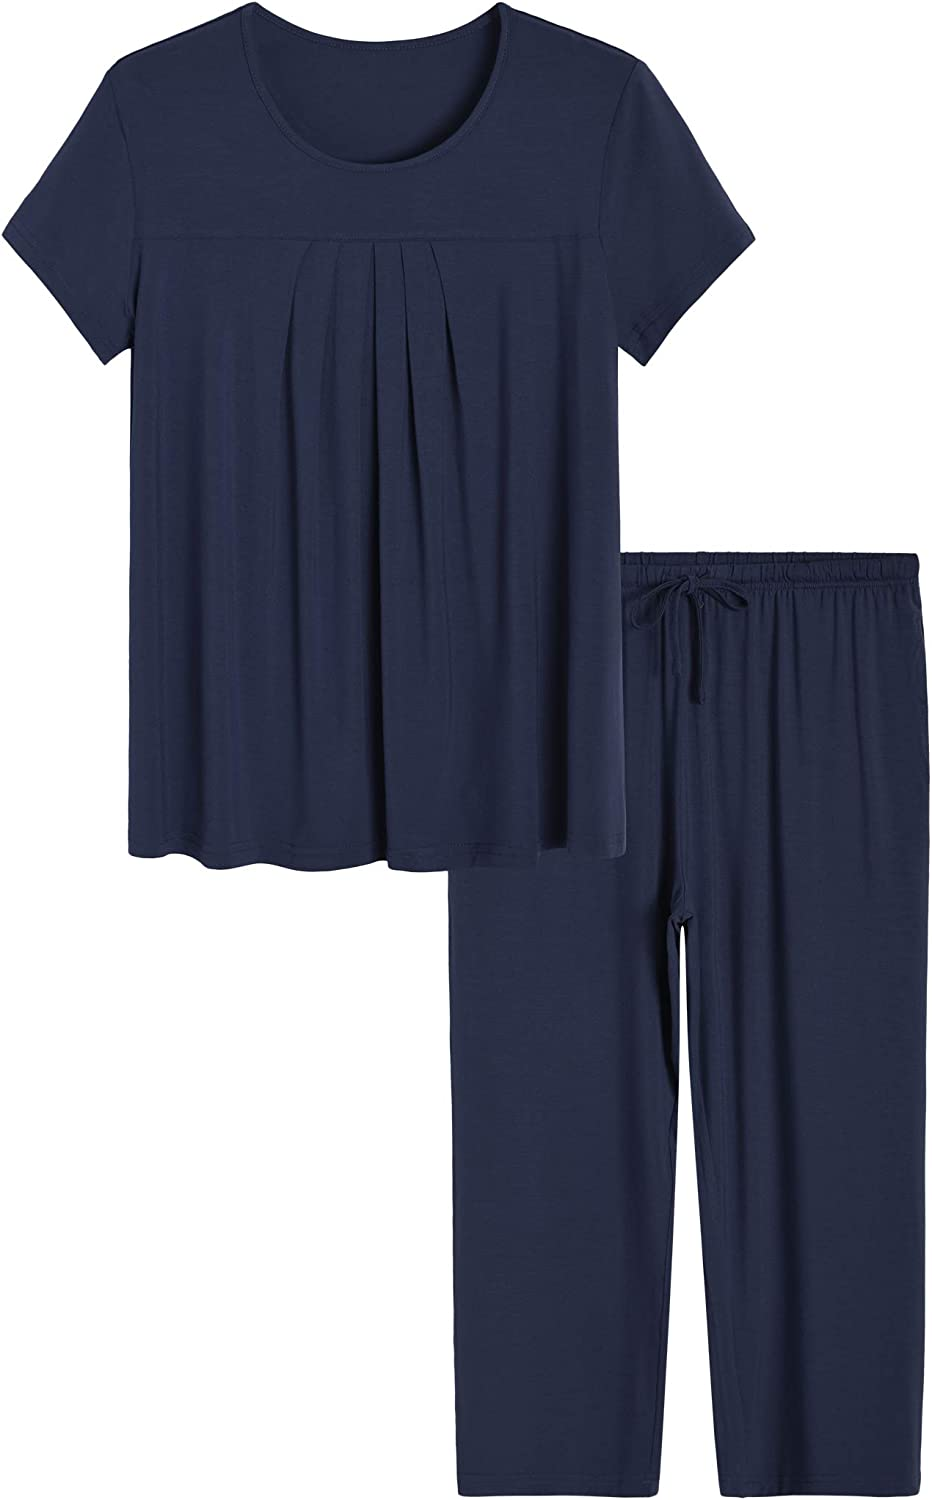 Latuza Women/'s Pleated Loungewear Top and Capris Pajamas Set